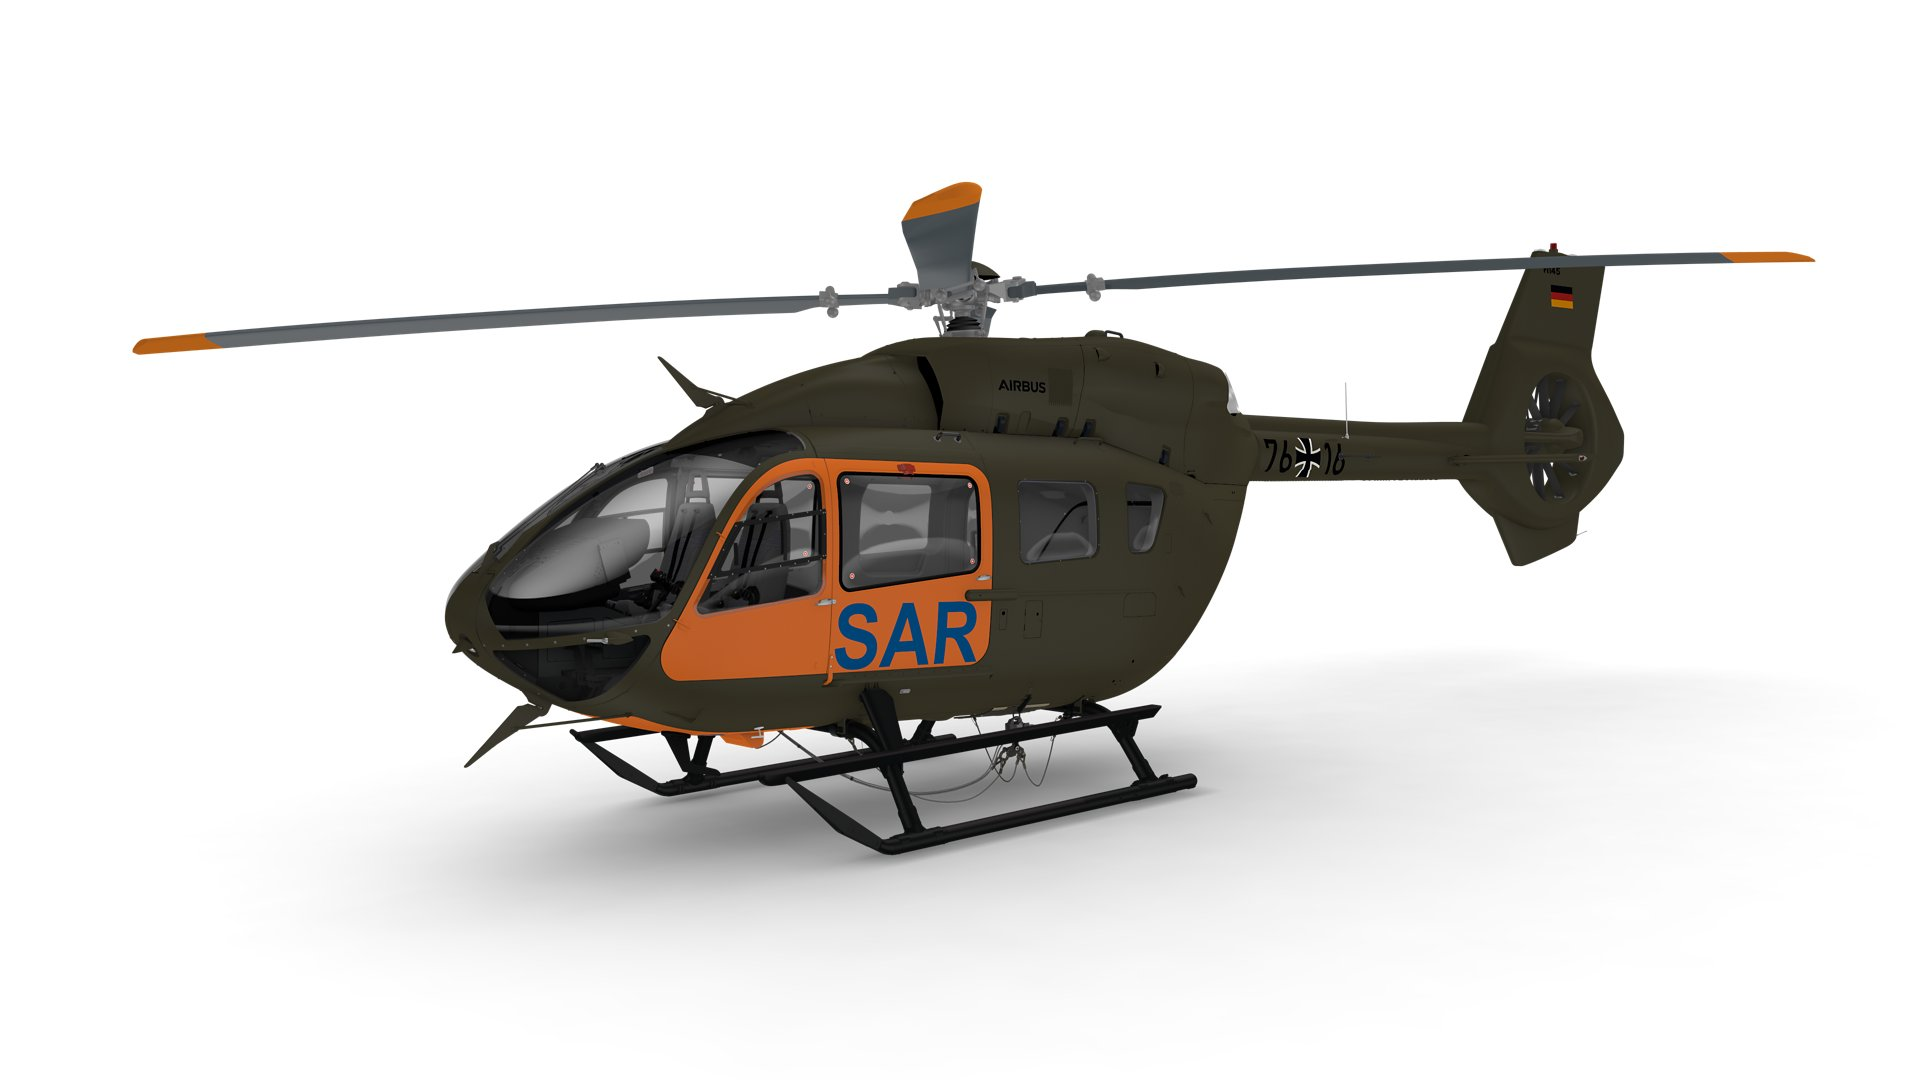 H145 for search and rescue